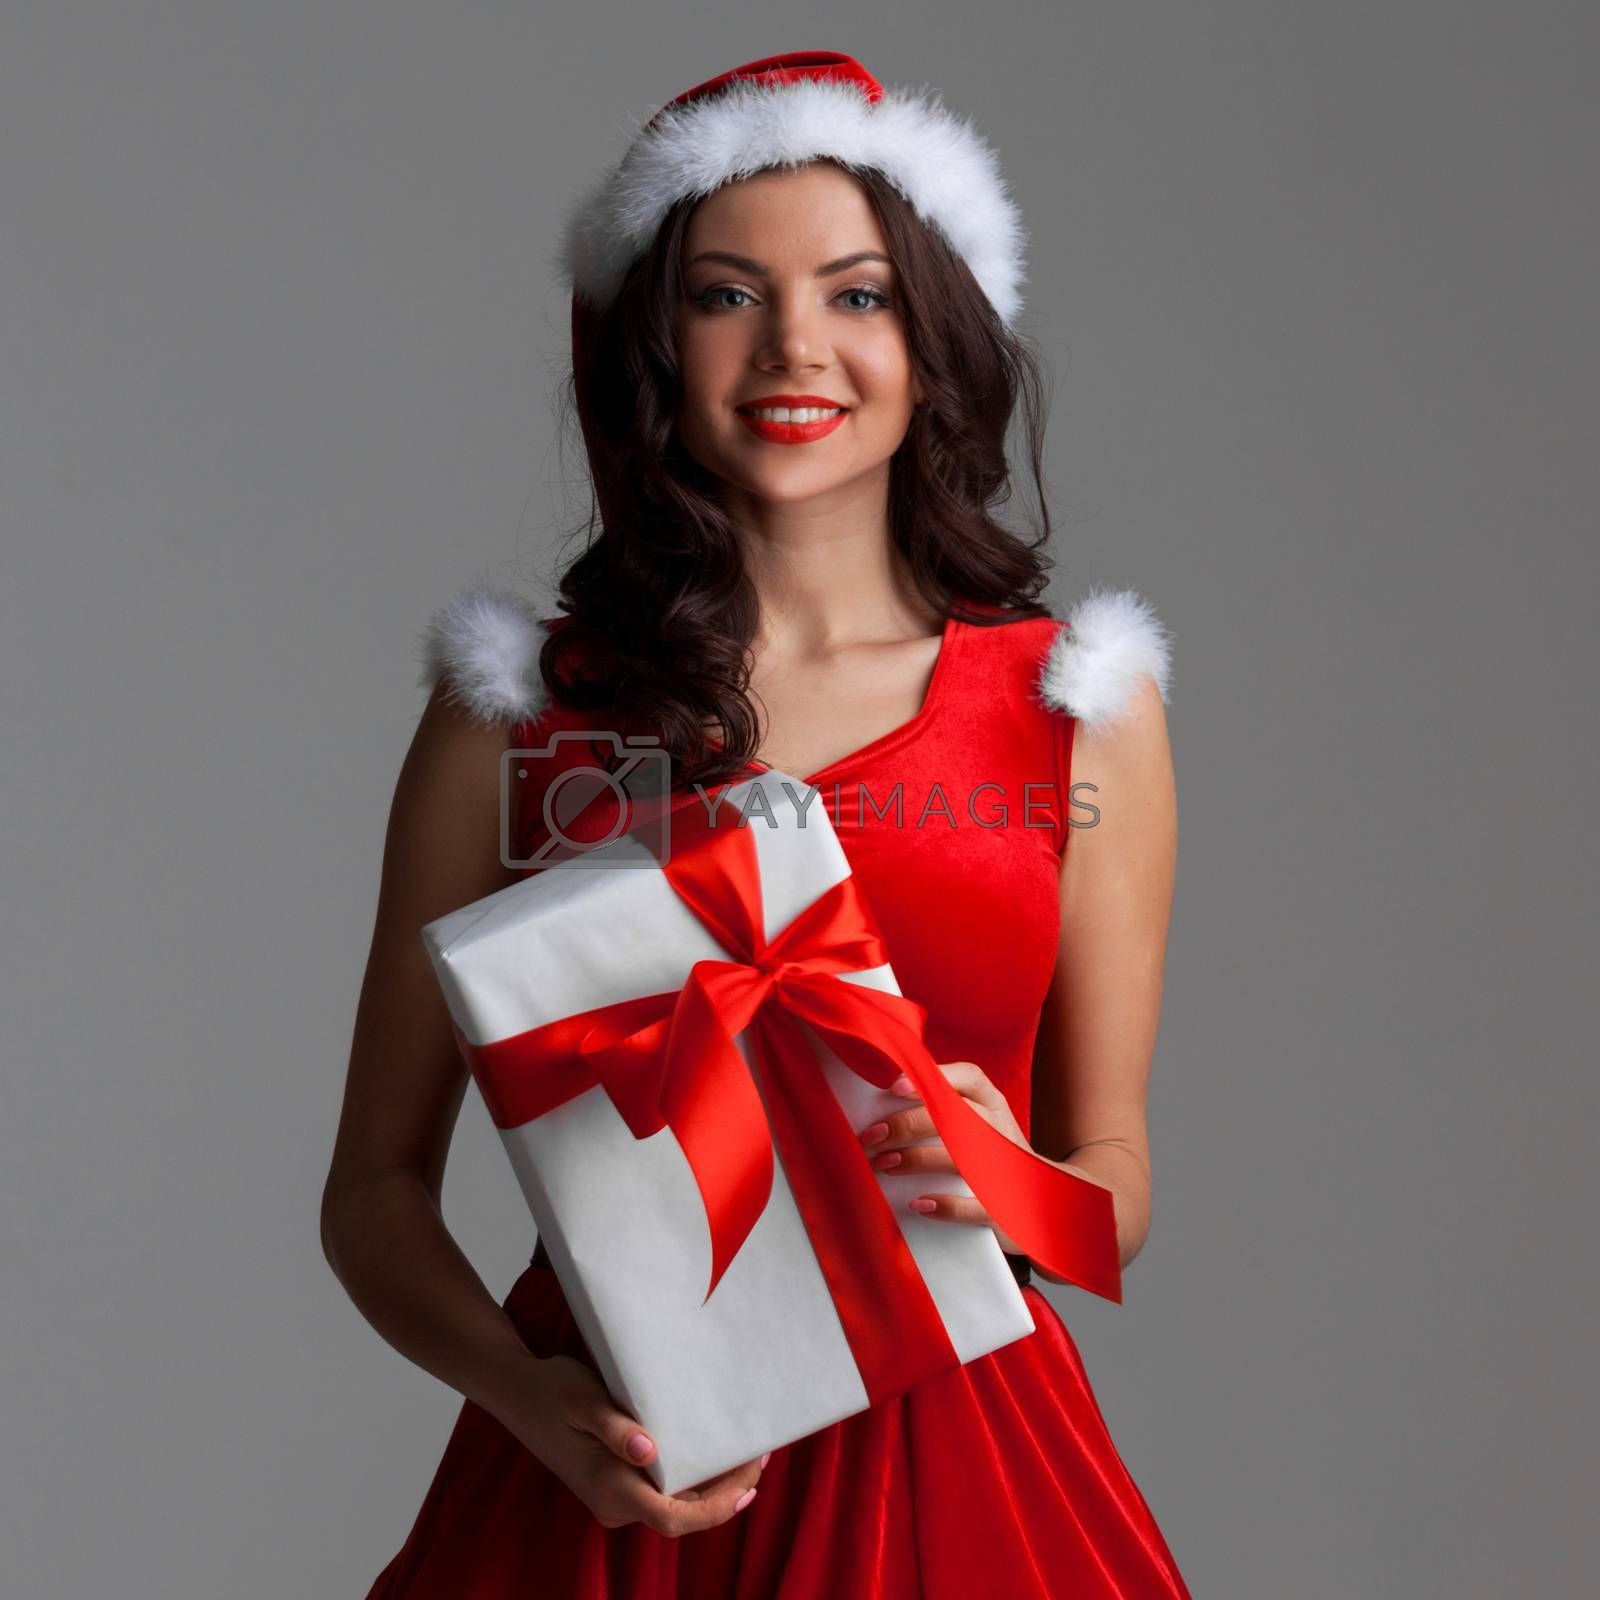 Smiling cute girl in red christmas outfit holding gift box on gray background